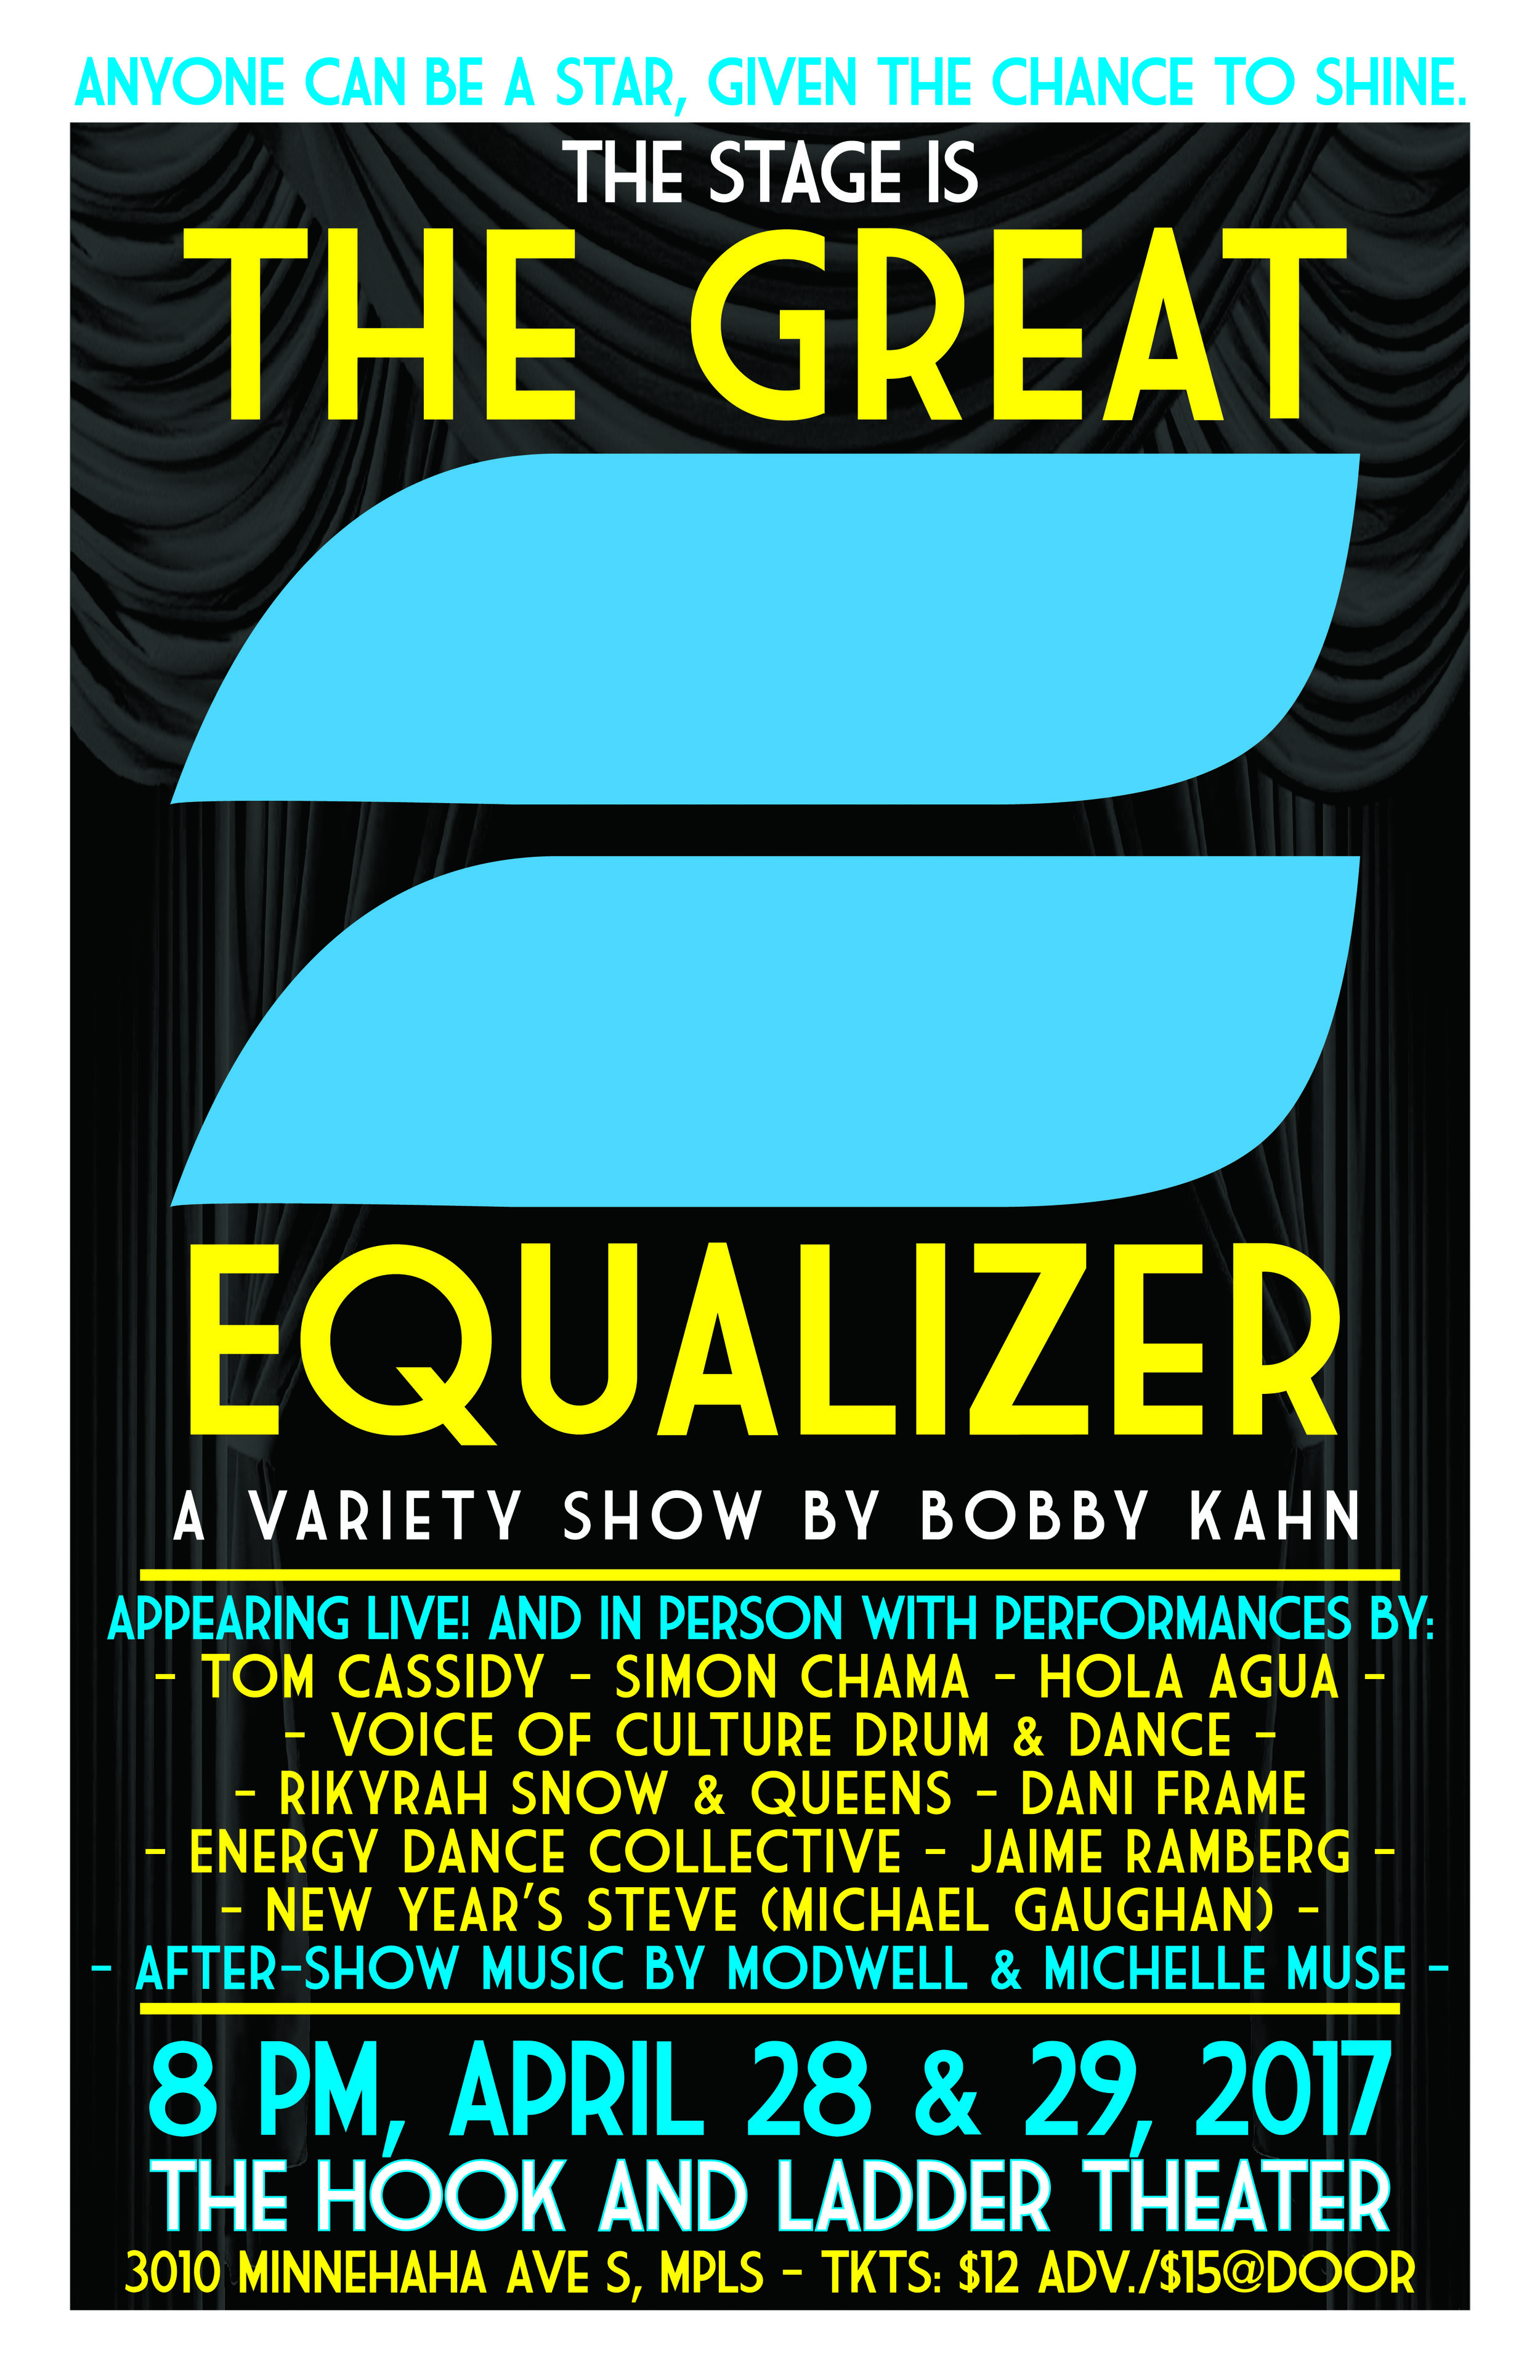 Flyer designed by James Kloiber